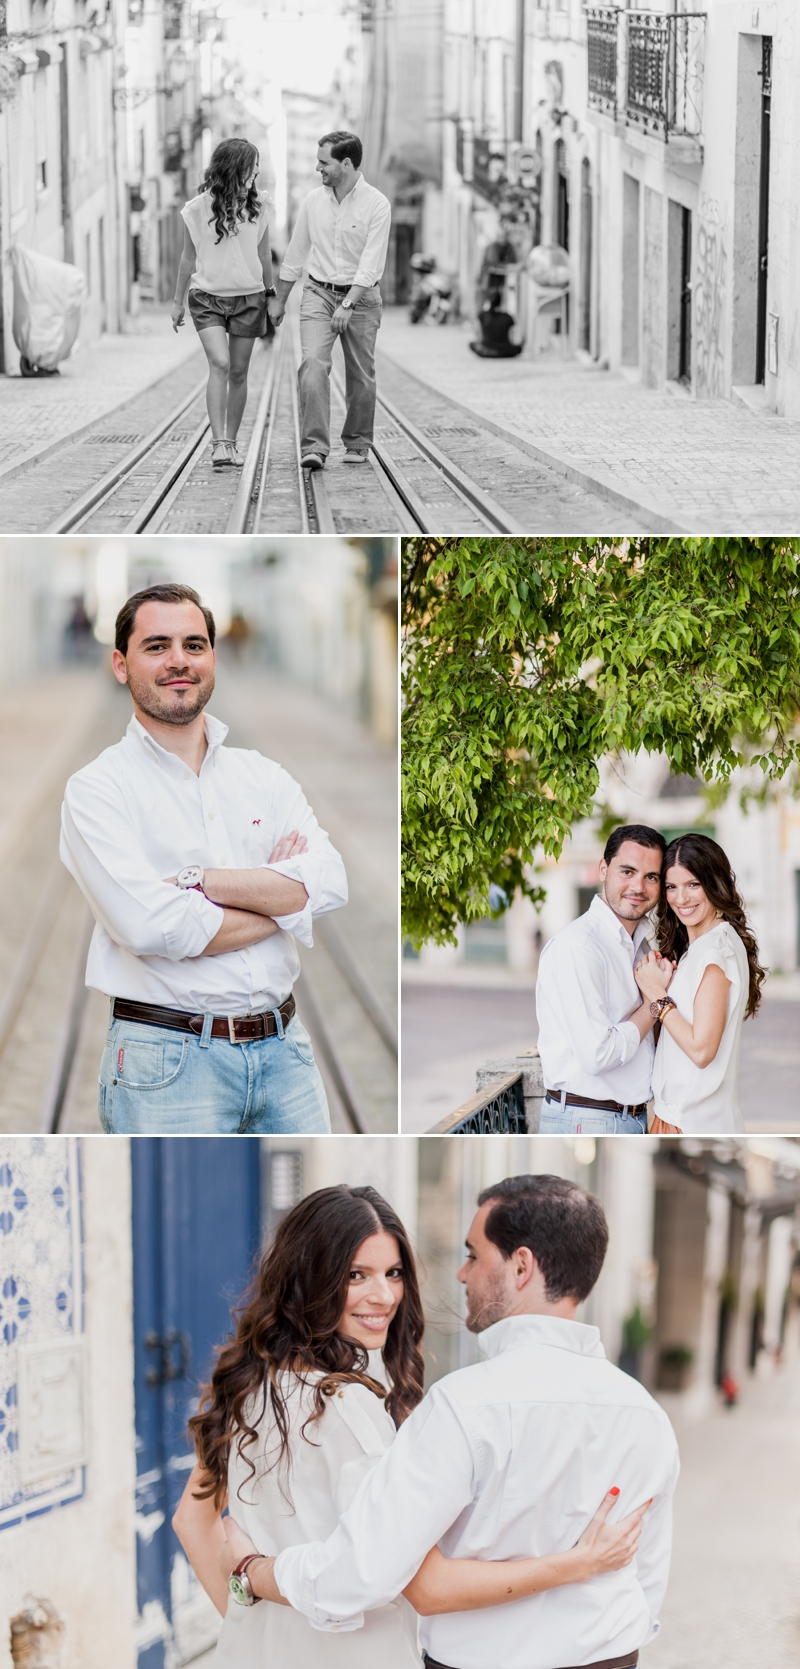 MR_Engagement_portuguese_wedding_photographer-6.jpg